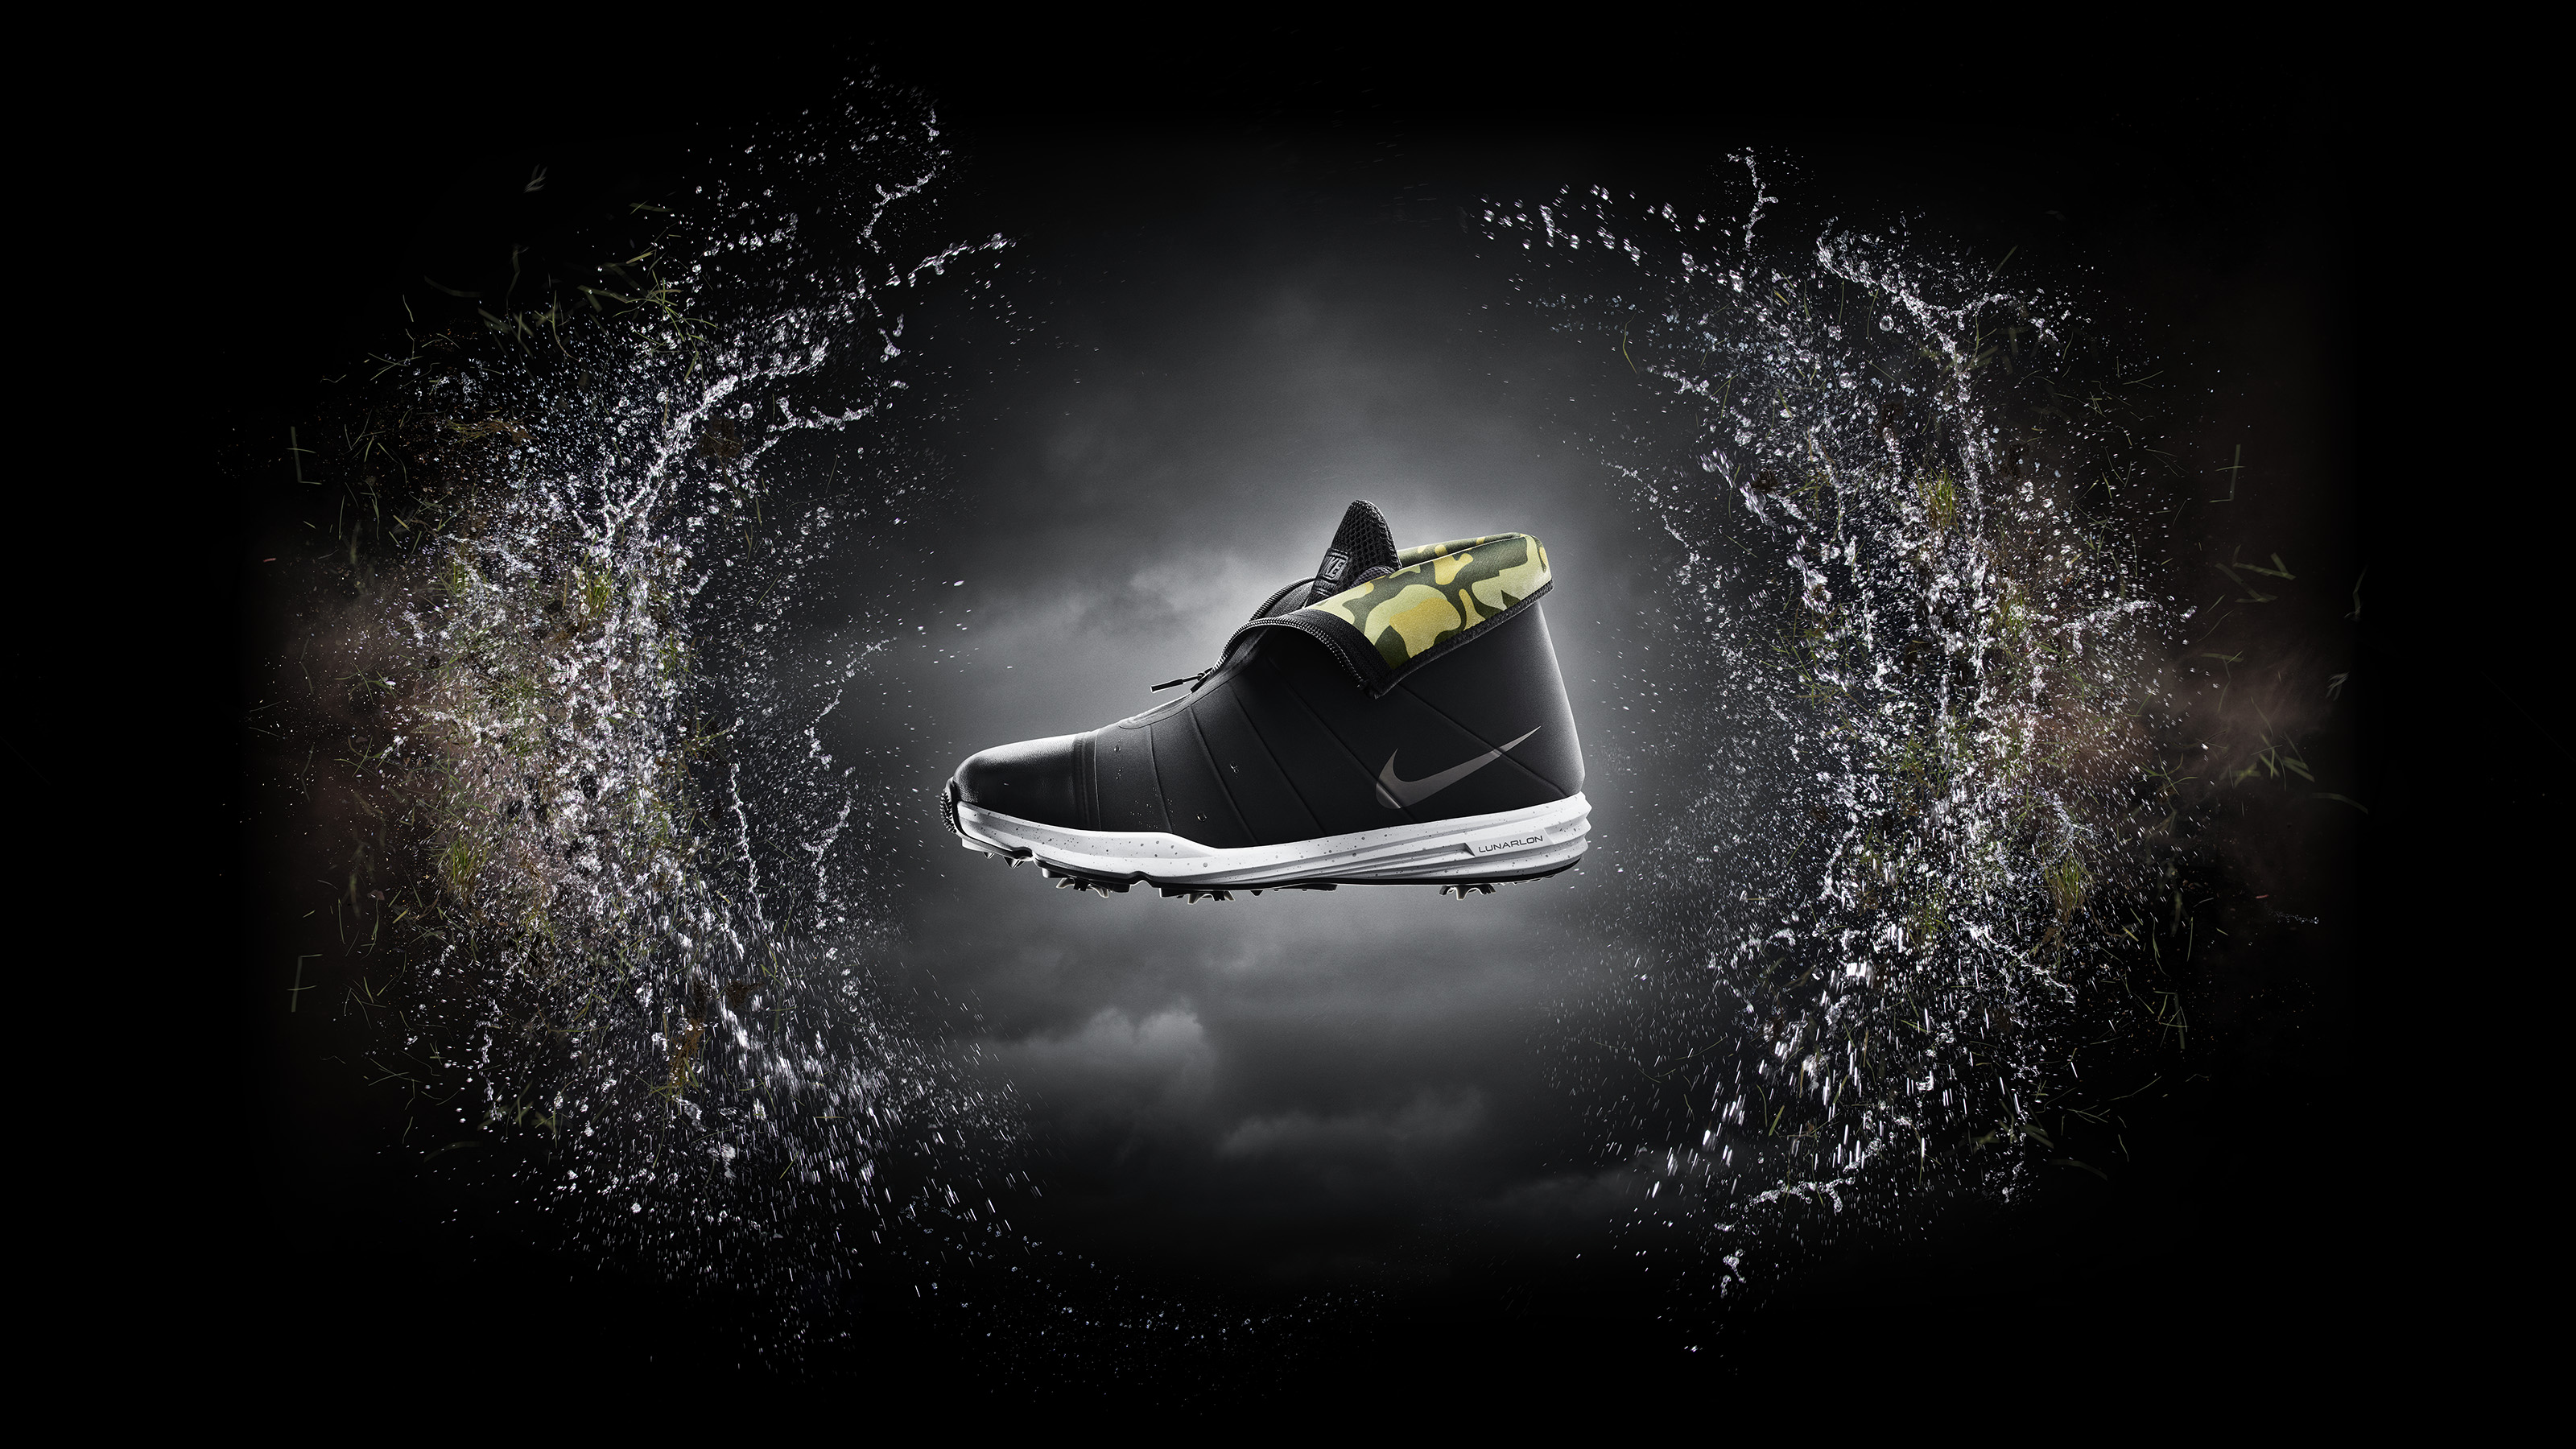 nike lunarlite new nike shoes football 2016